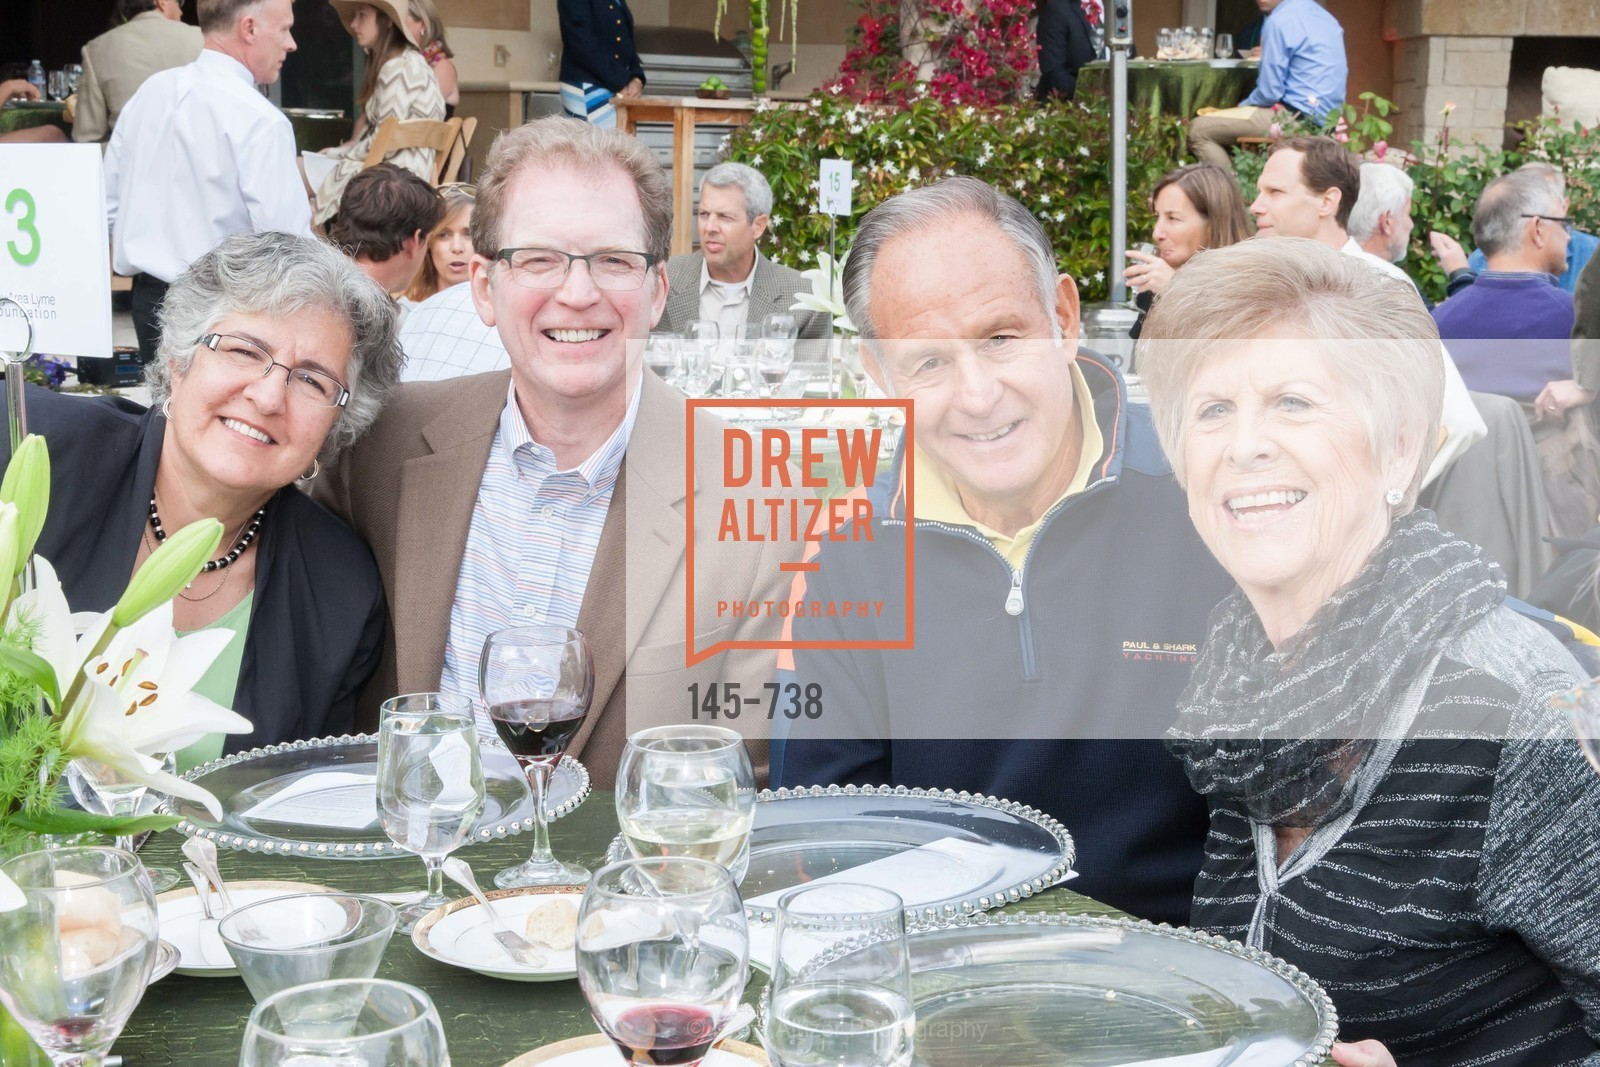 Lisa Keany, Lloyd Minor, John Sobrato, Sue Sobrato, LymeAid 2015, US, May 17th, 2015,Drew Altizer, Drew Altizer Photography, full-service agency, private events, San Francisco photographer, photographer california